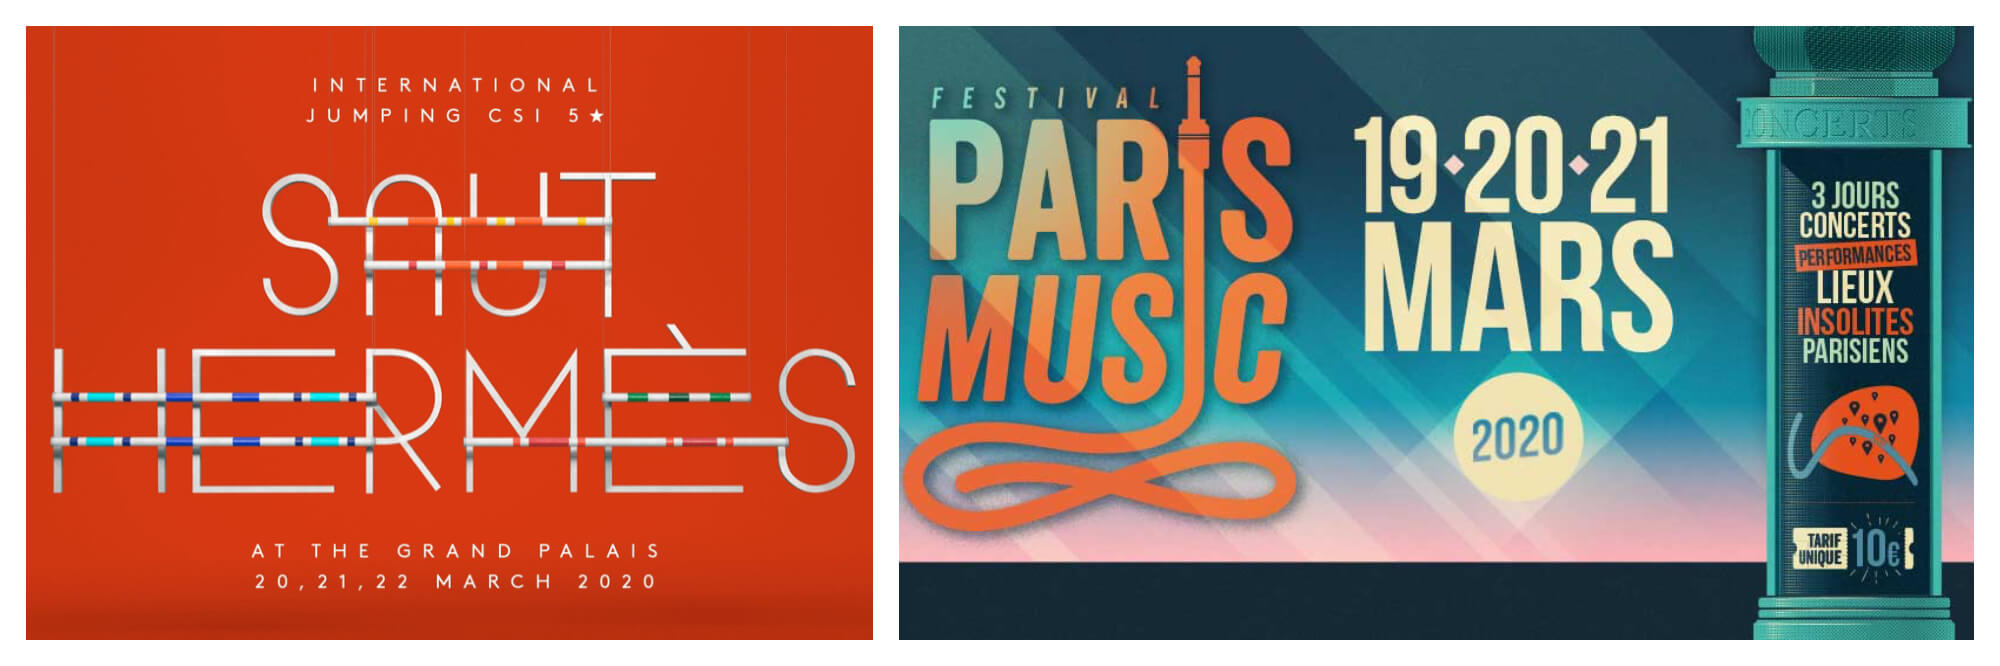 Banner for Saut Hermès hirse jumping event (left) and a poster of Paris music festival this March (right).